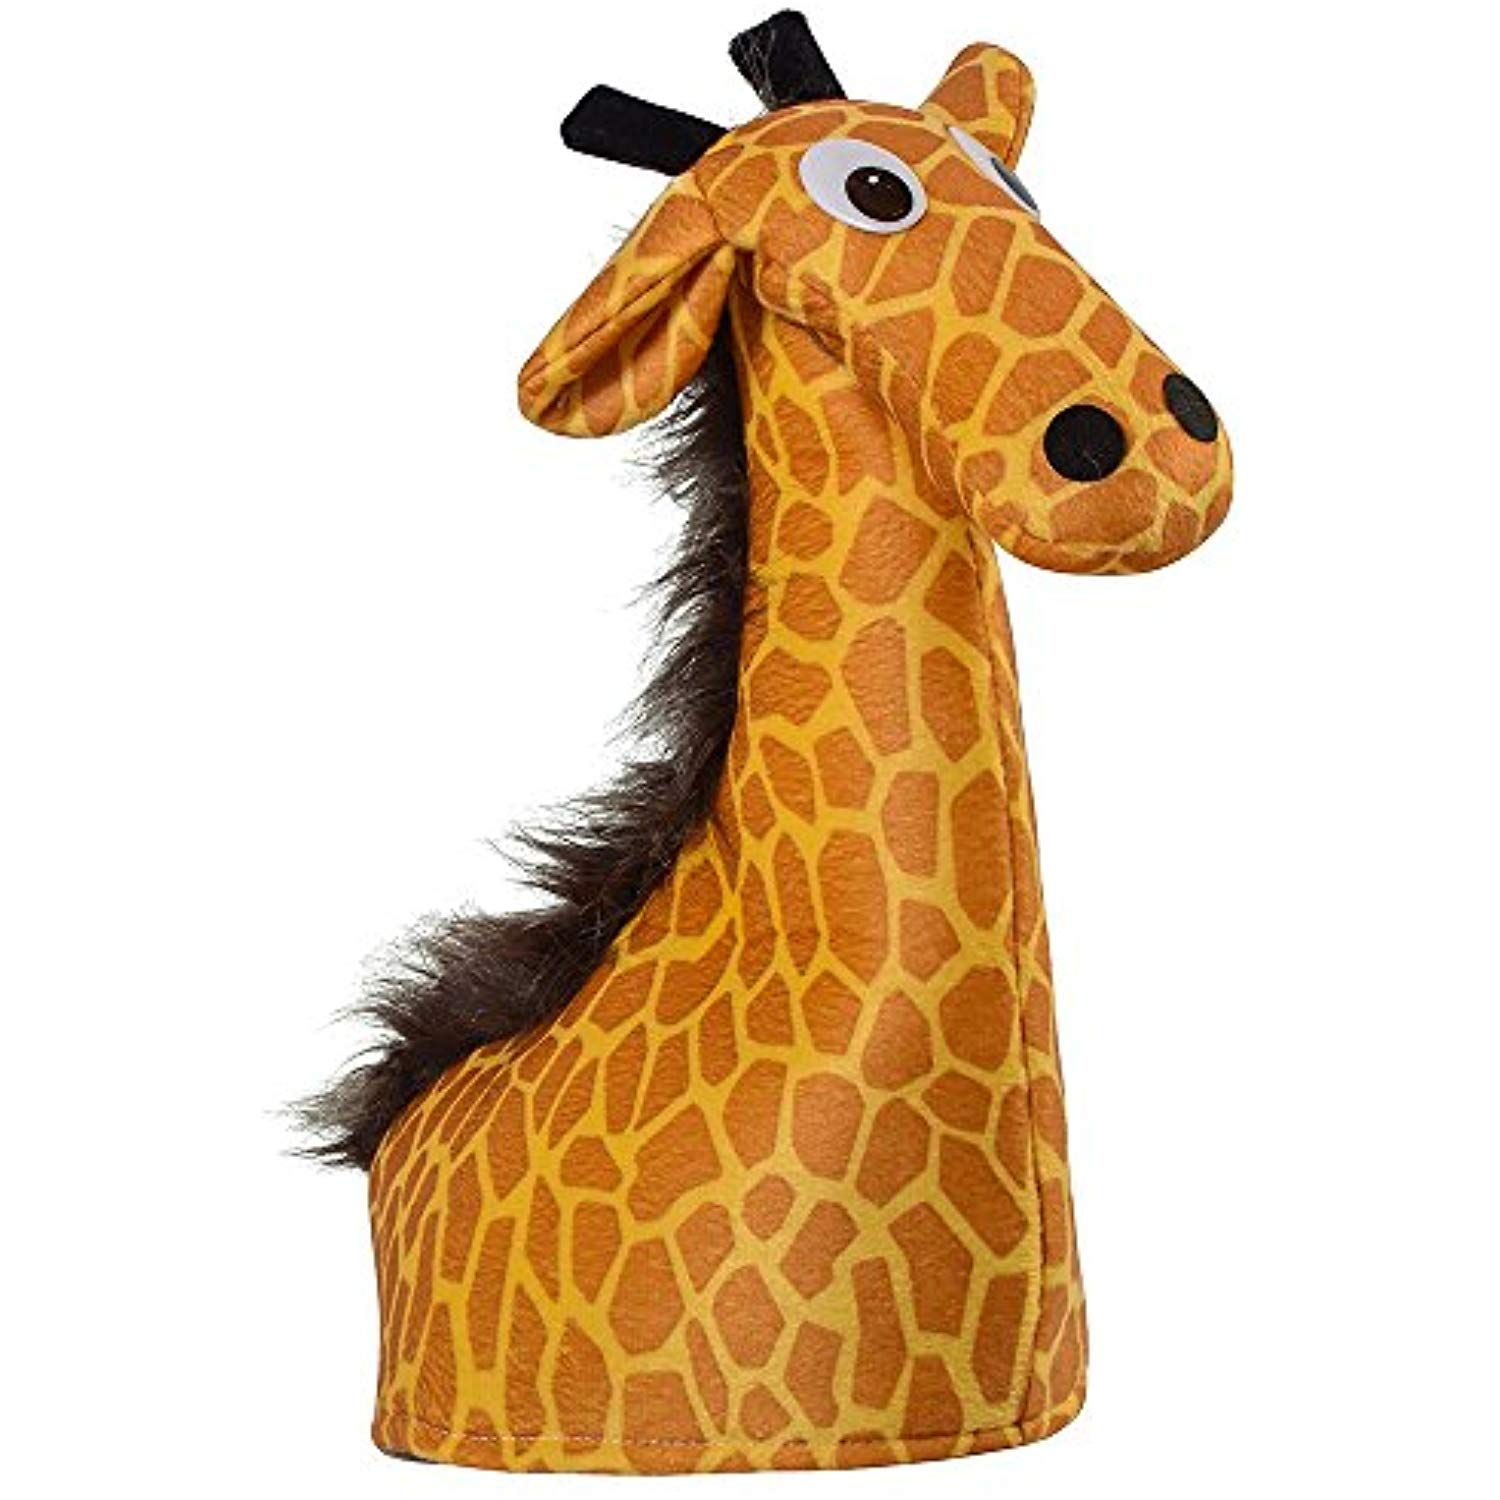 Funny Party Hats Novelty Hats For Adults Costume Hats Animal Hat